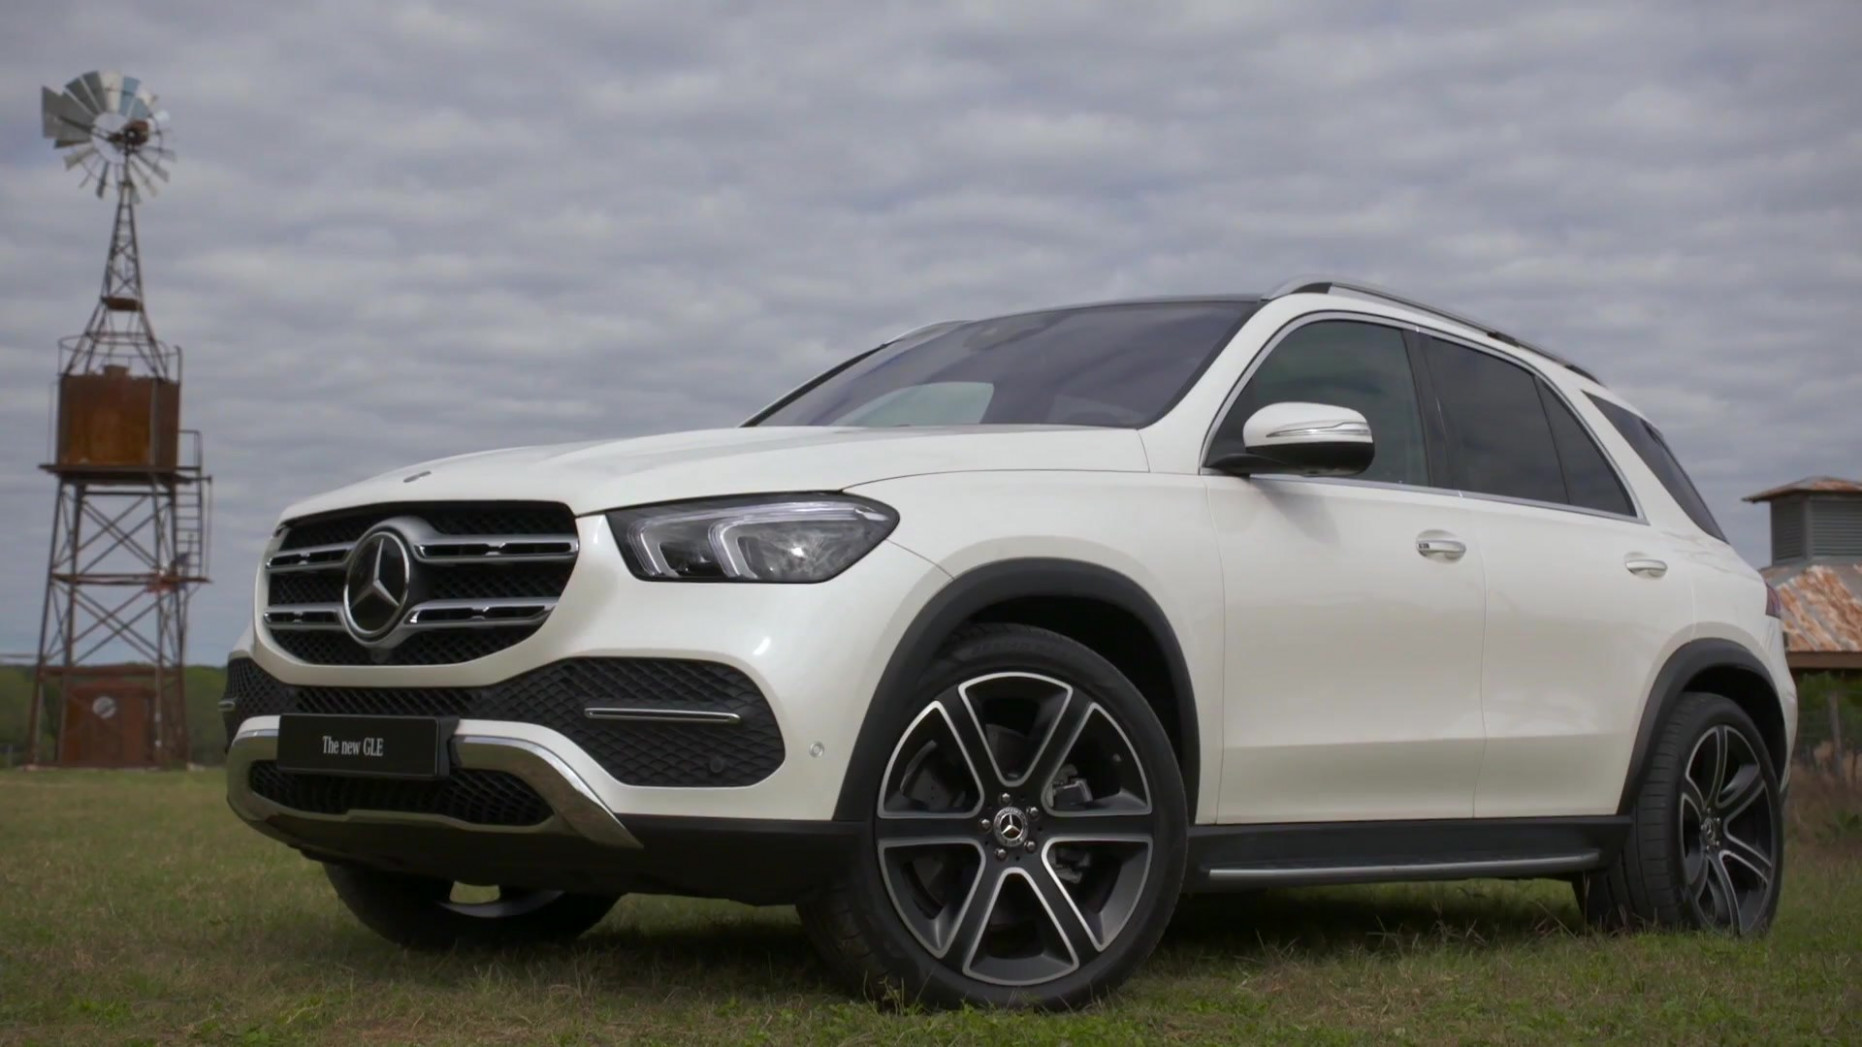 Der neue Mercedes-Benz GLE 11 d 11MATIC Exterieur Design in Diamantweiß - mercedes gle 2020 indonesia